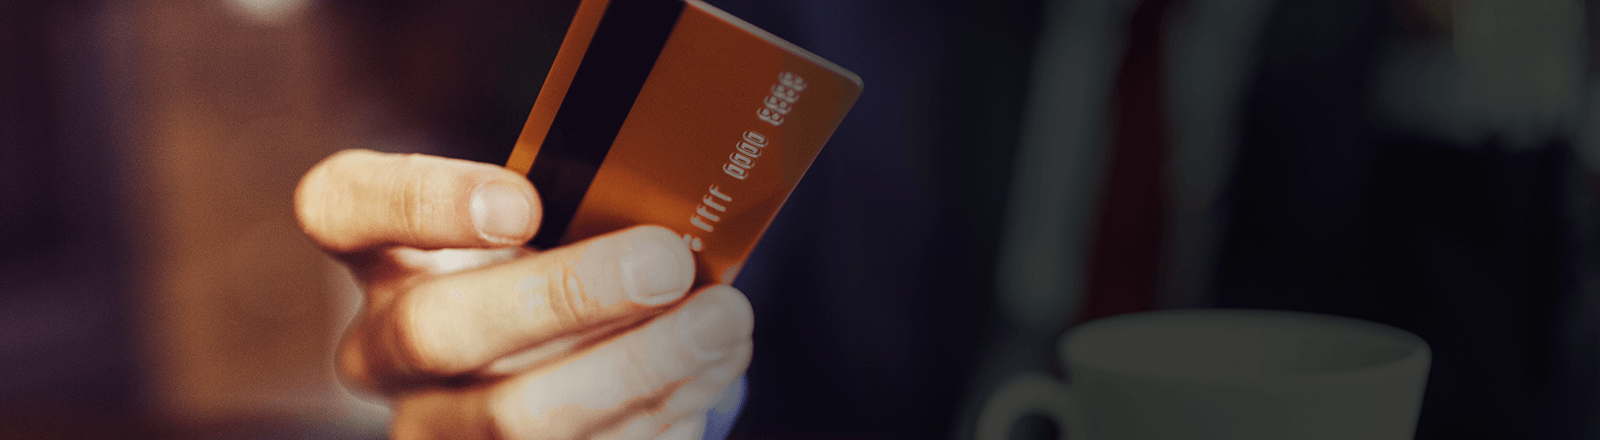 Photo of a hand holding a credit card